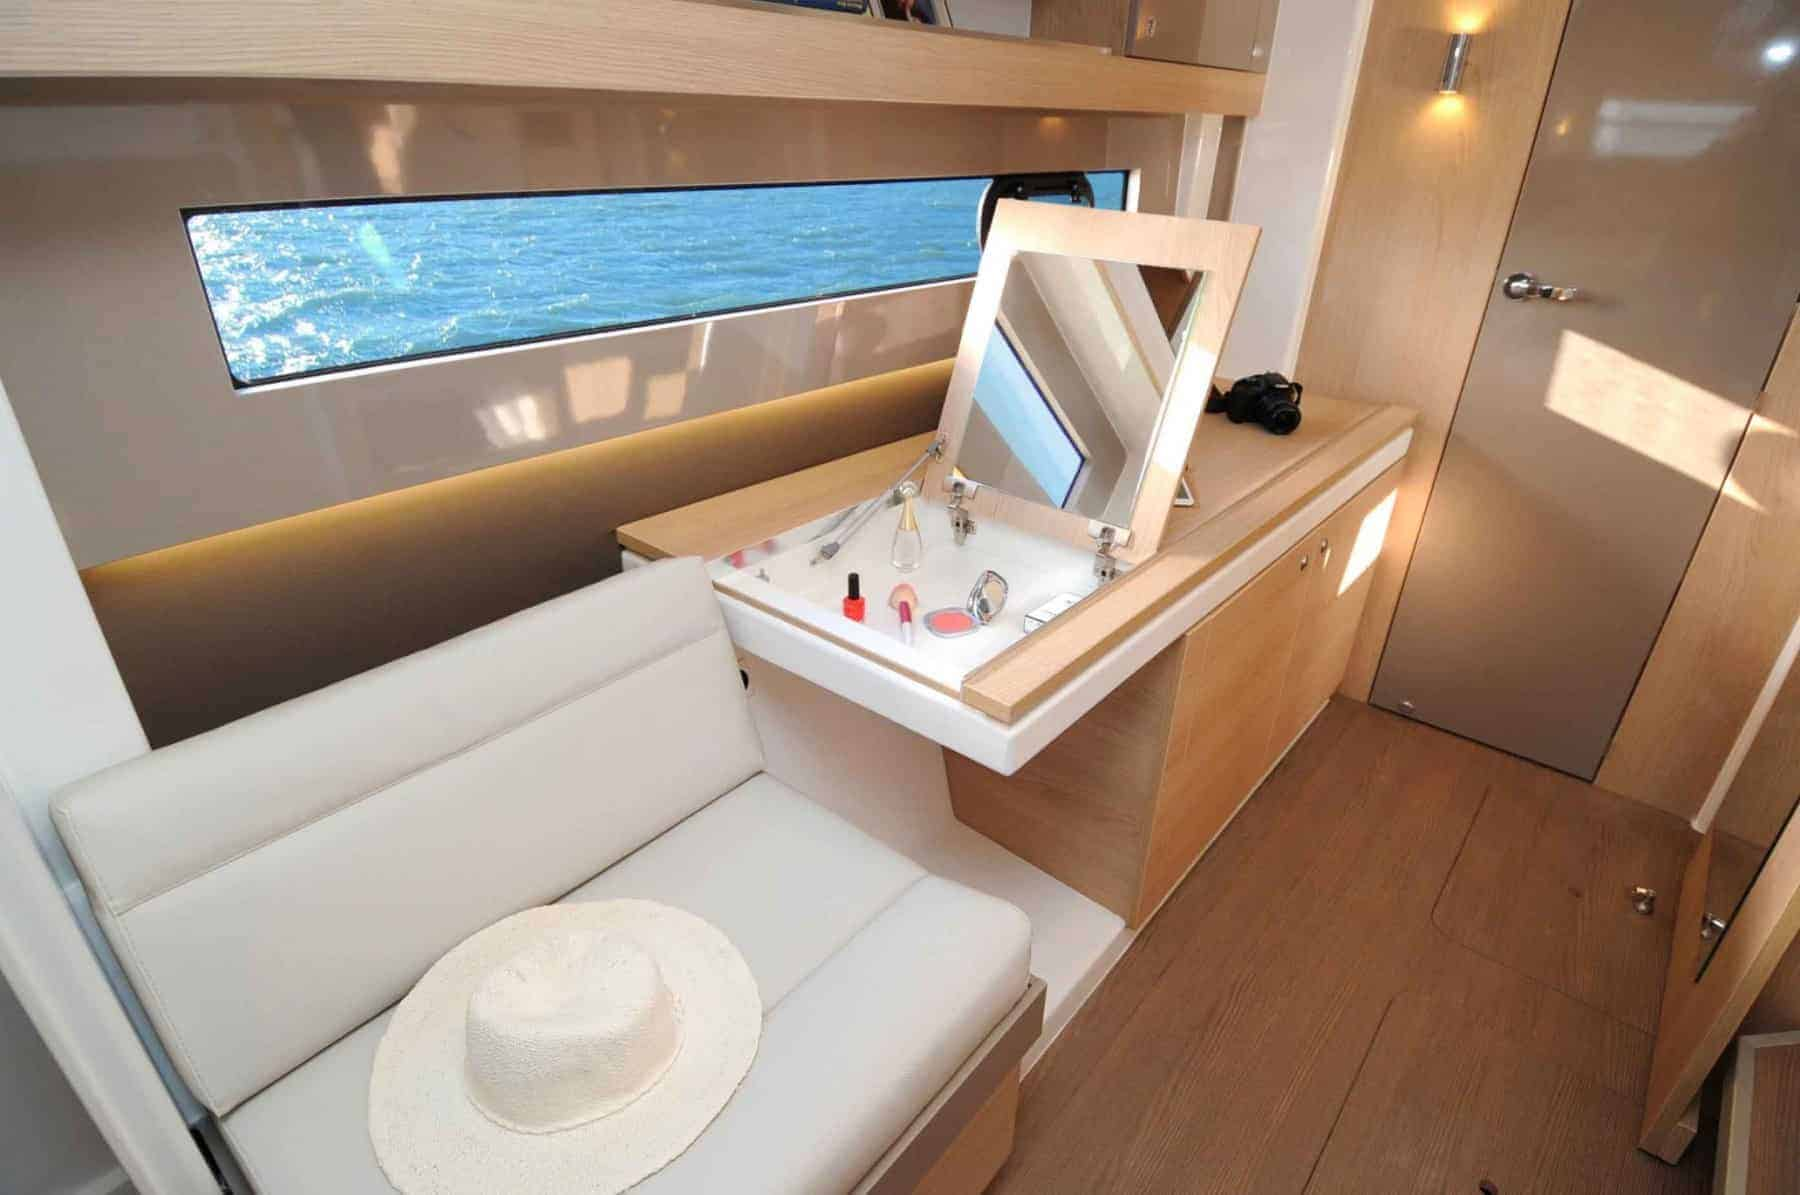 An open makeup cabinet and a hat on the sofa next to it in the beautiful cabin of the Bali 4.1